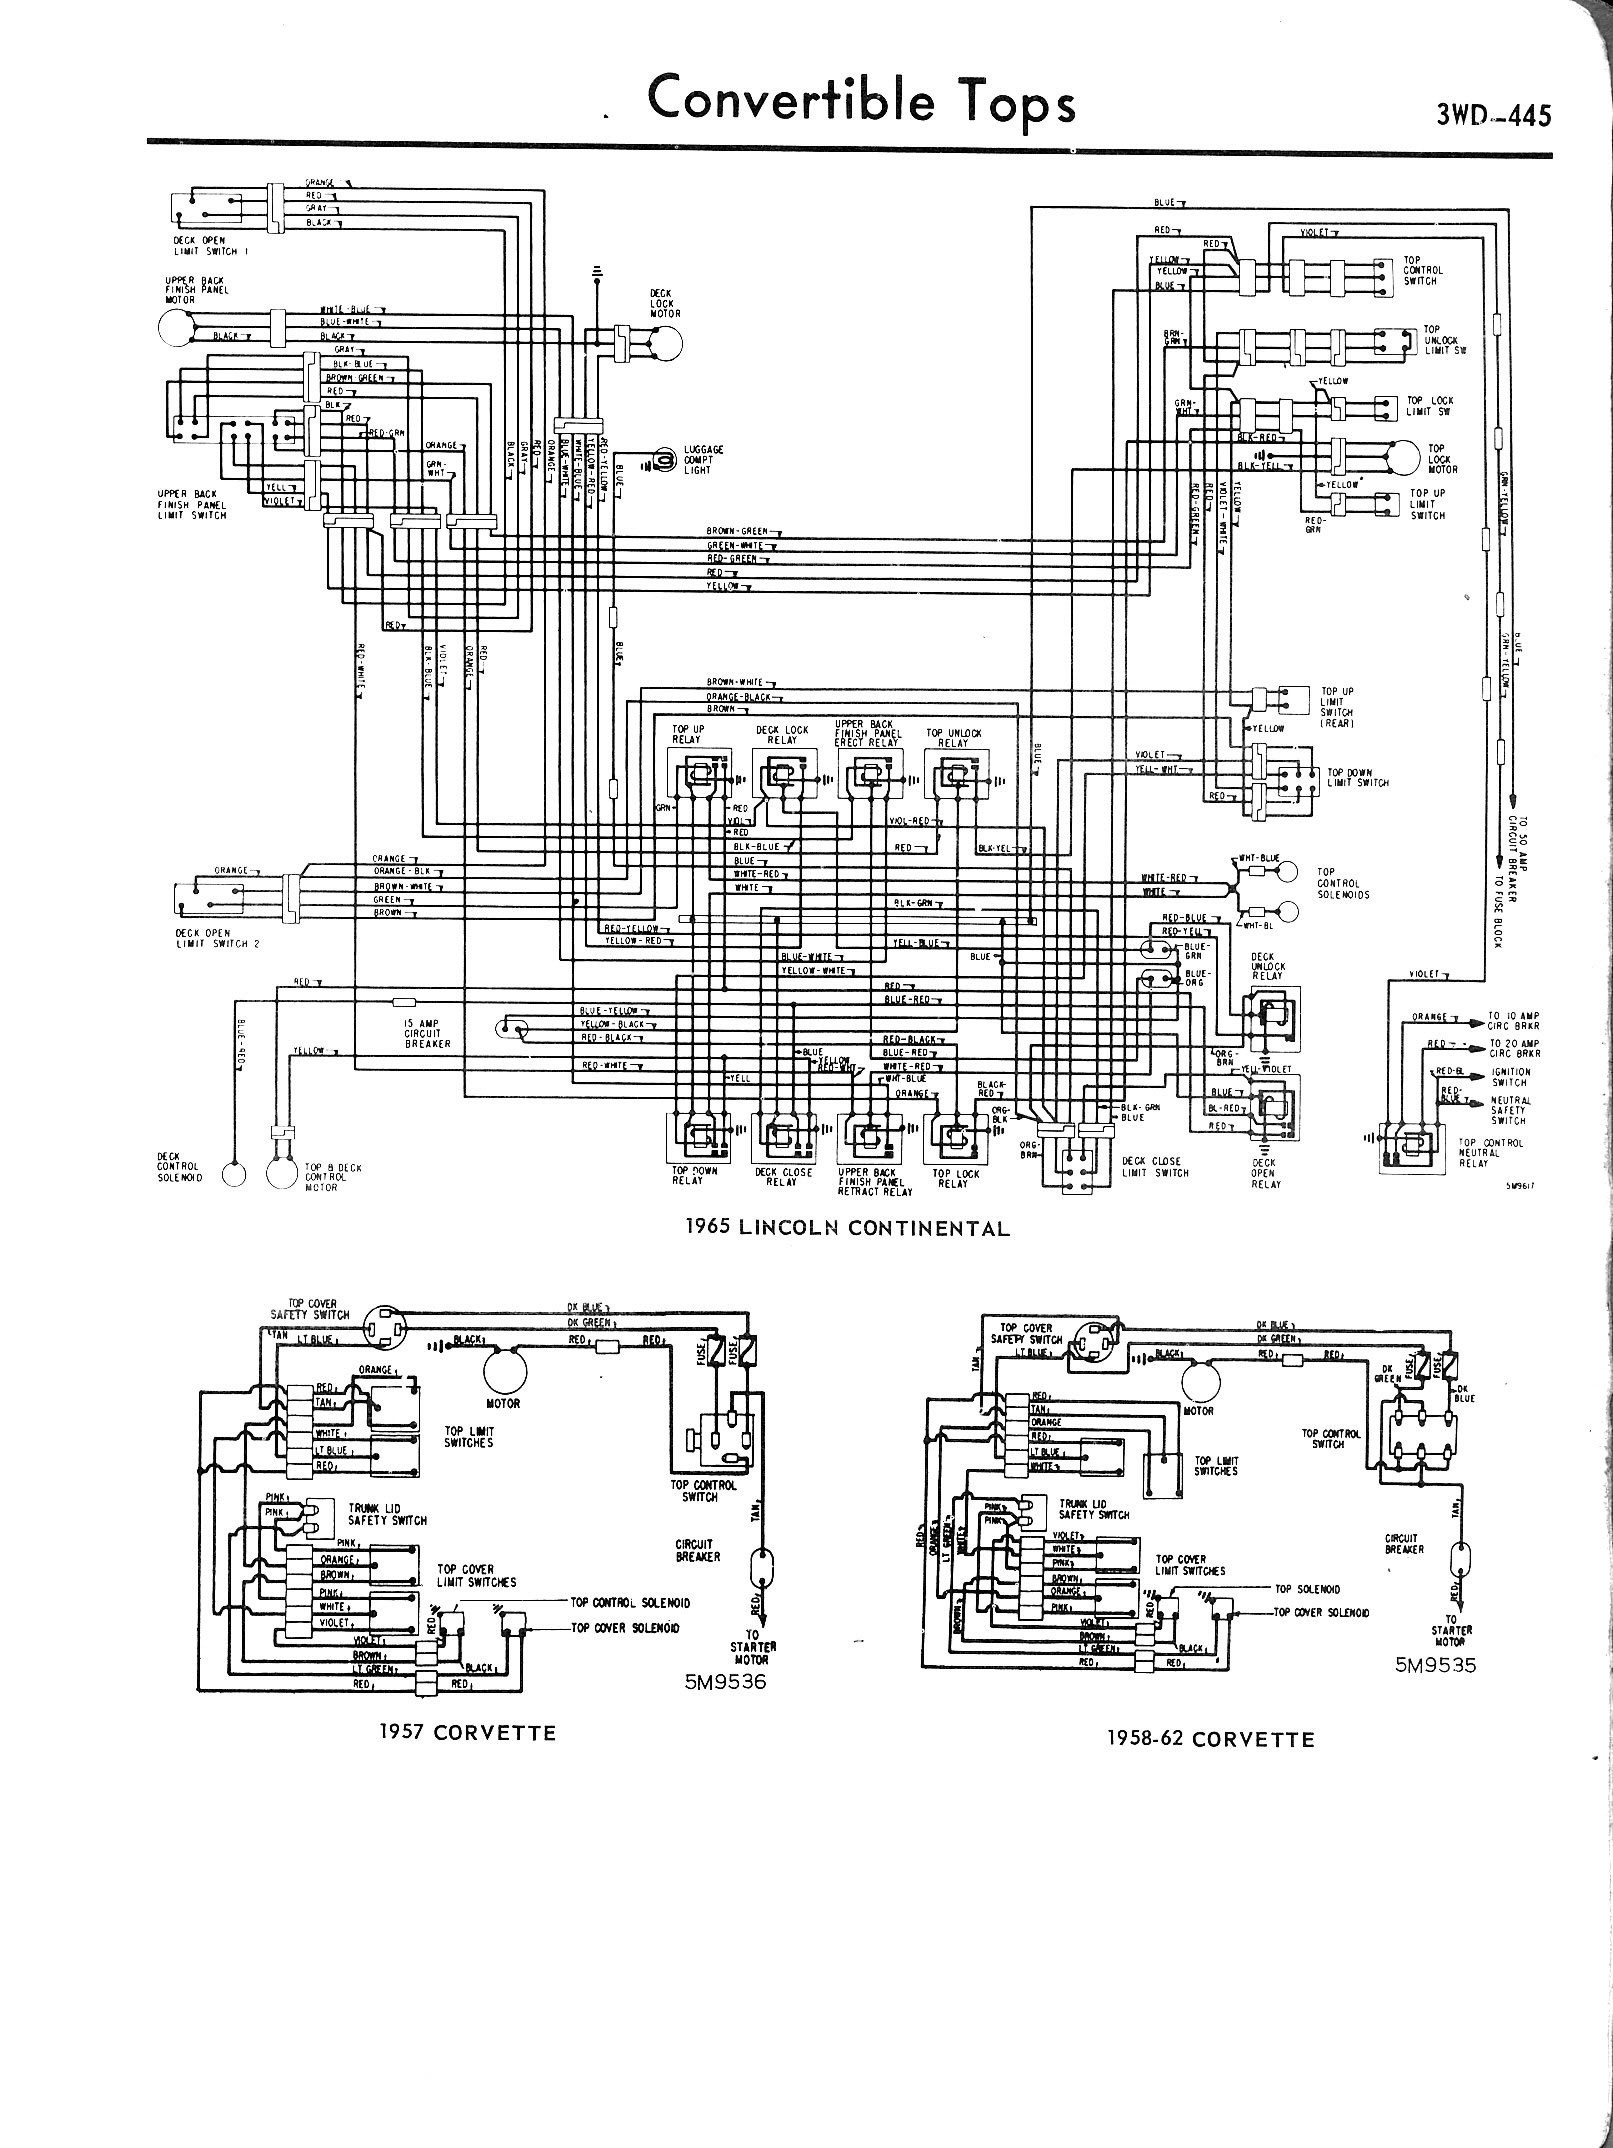 wiring diagram for 1956 chevy bel air wiring diagram progresif